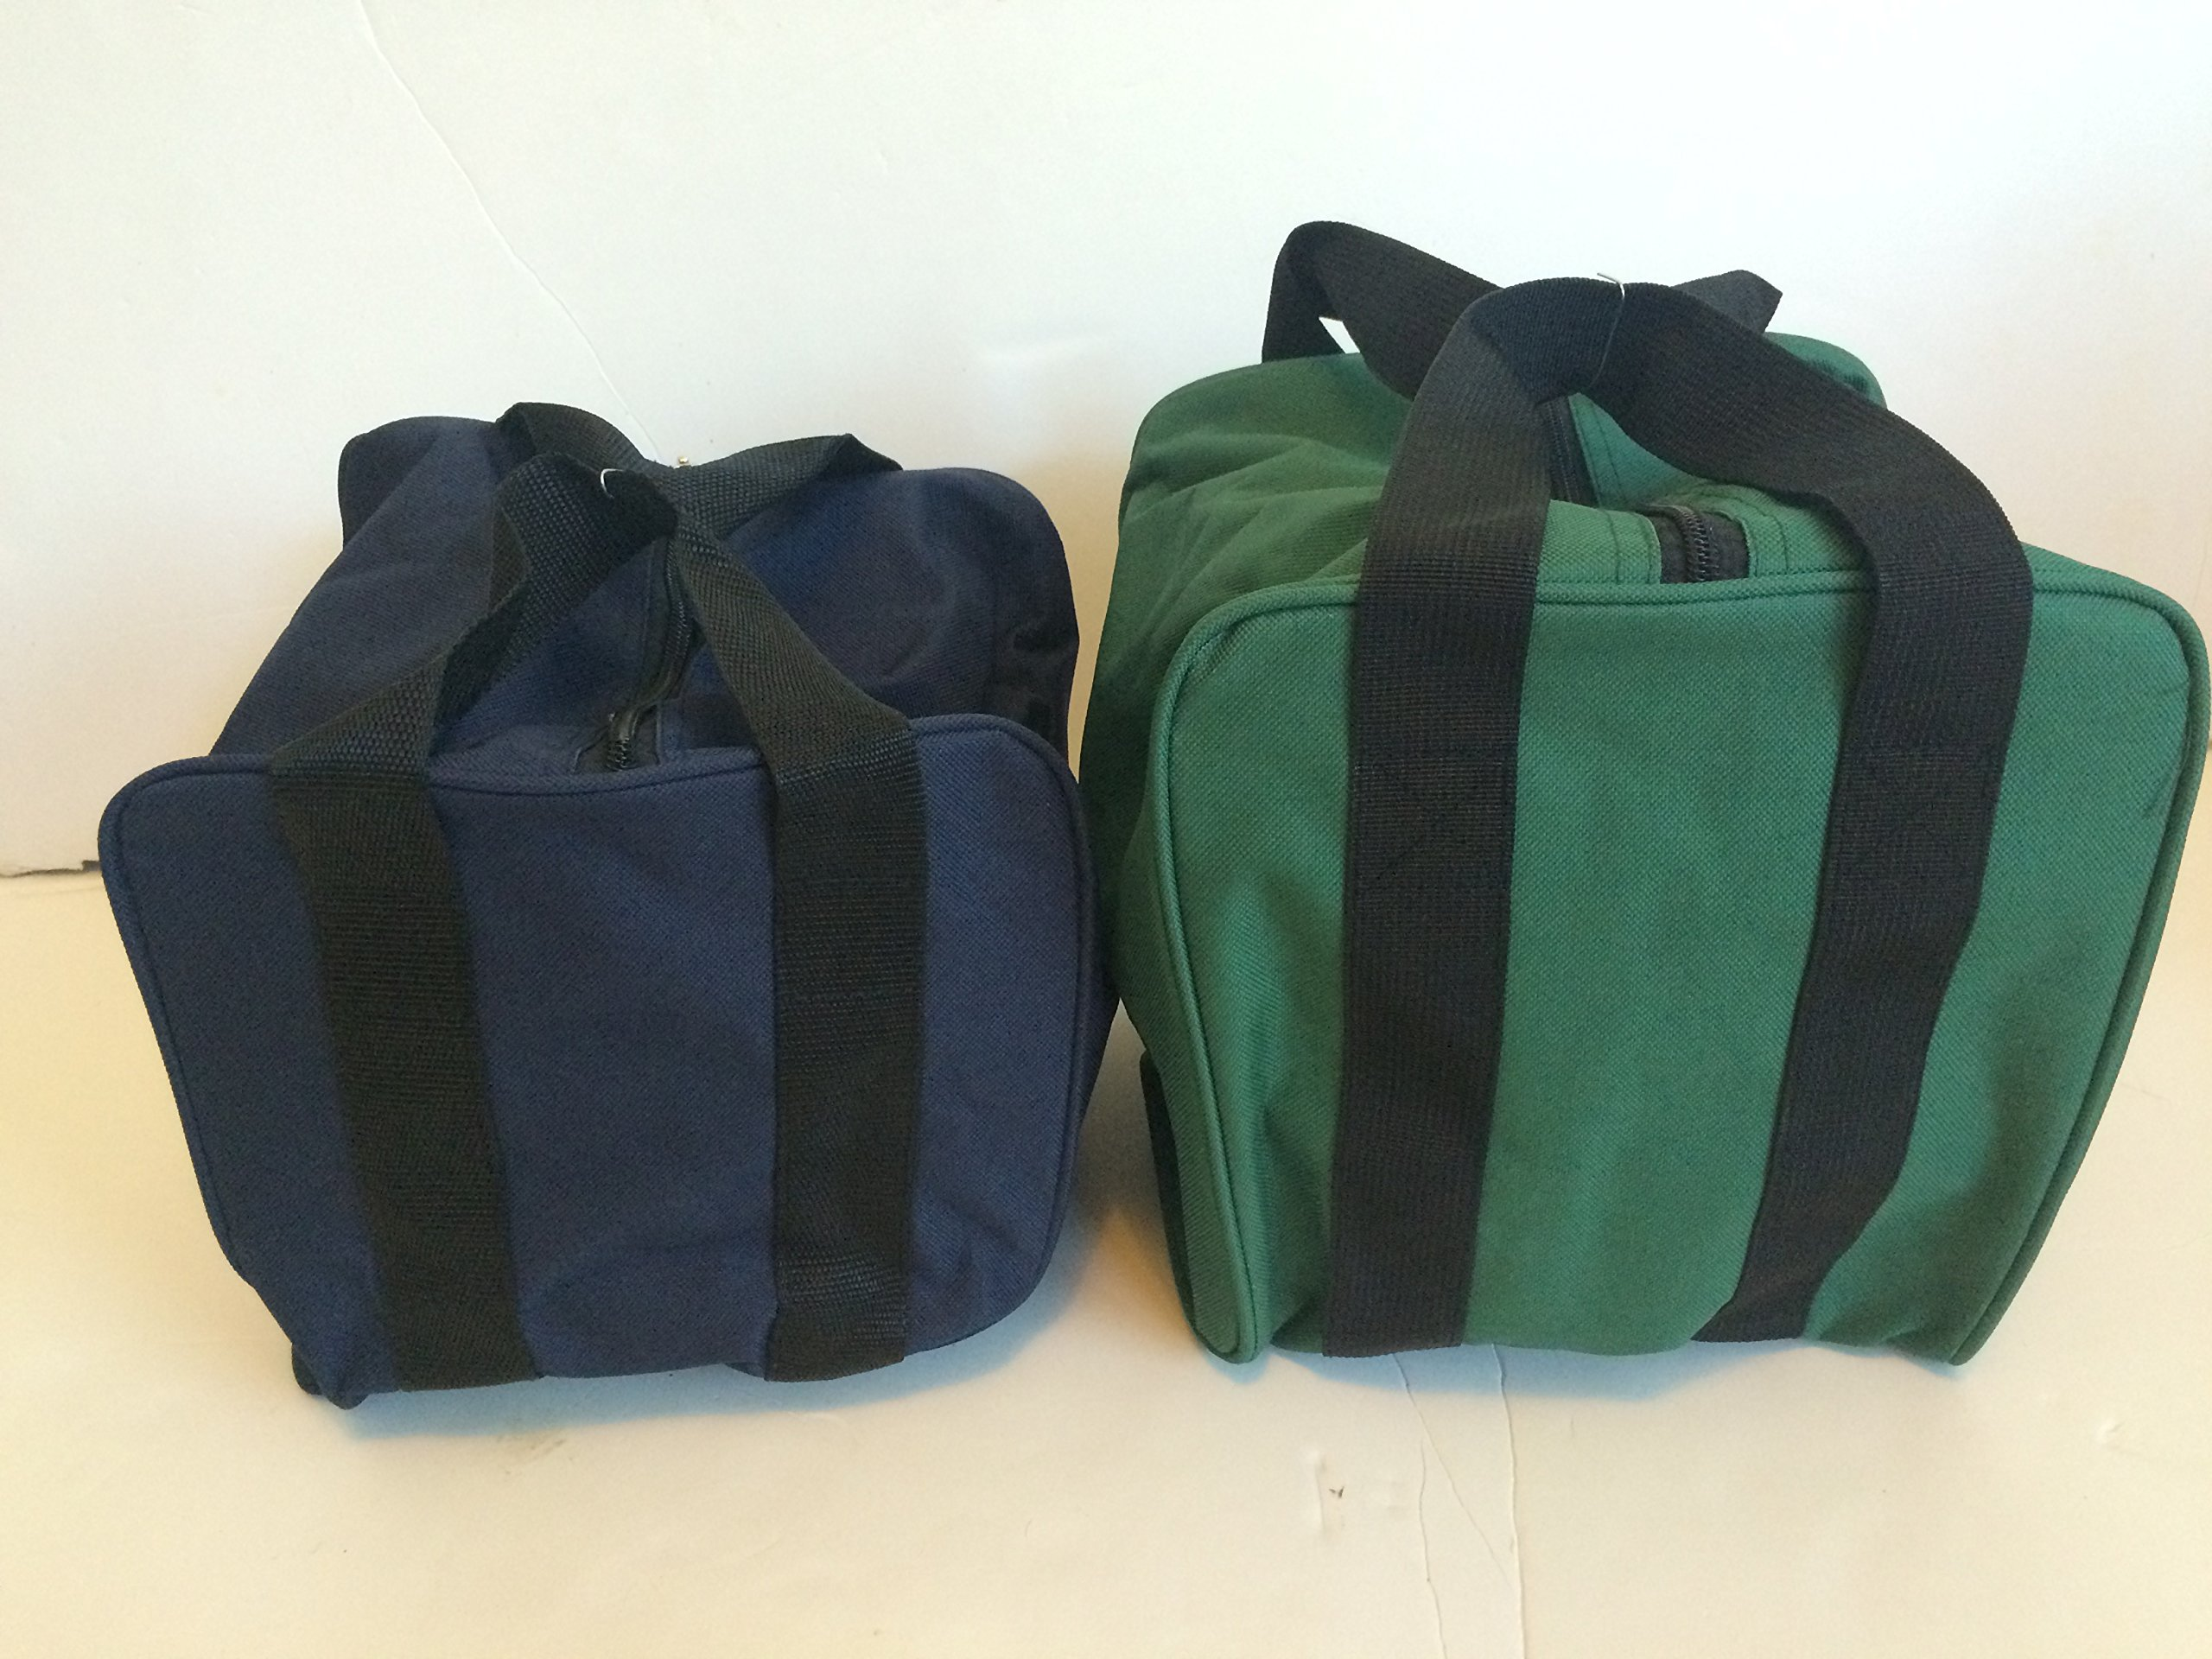 Unique Package - Pack of 2 Extra Heavy Duty Nylon Bocce Bags - Blue with Black Handles and Green with Black Handles